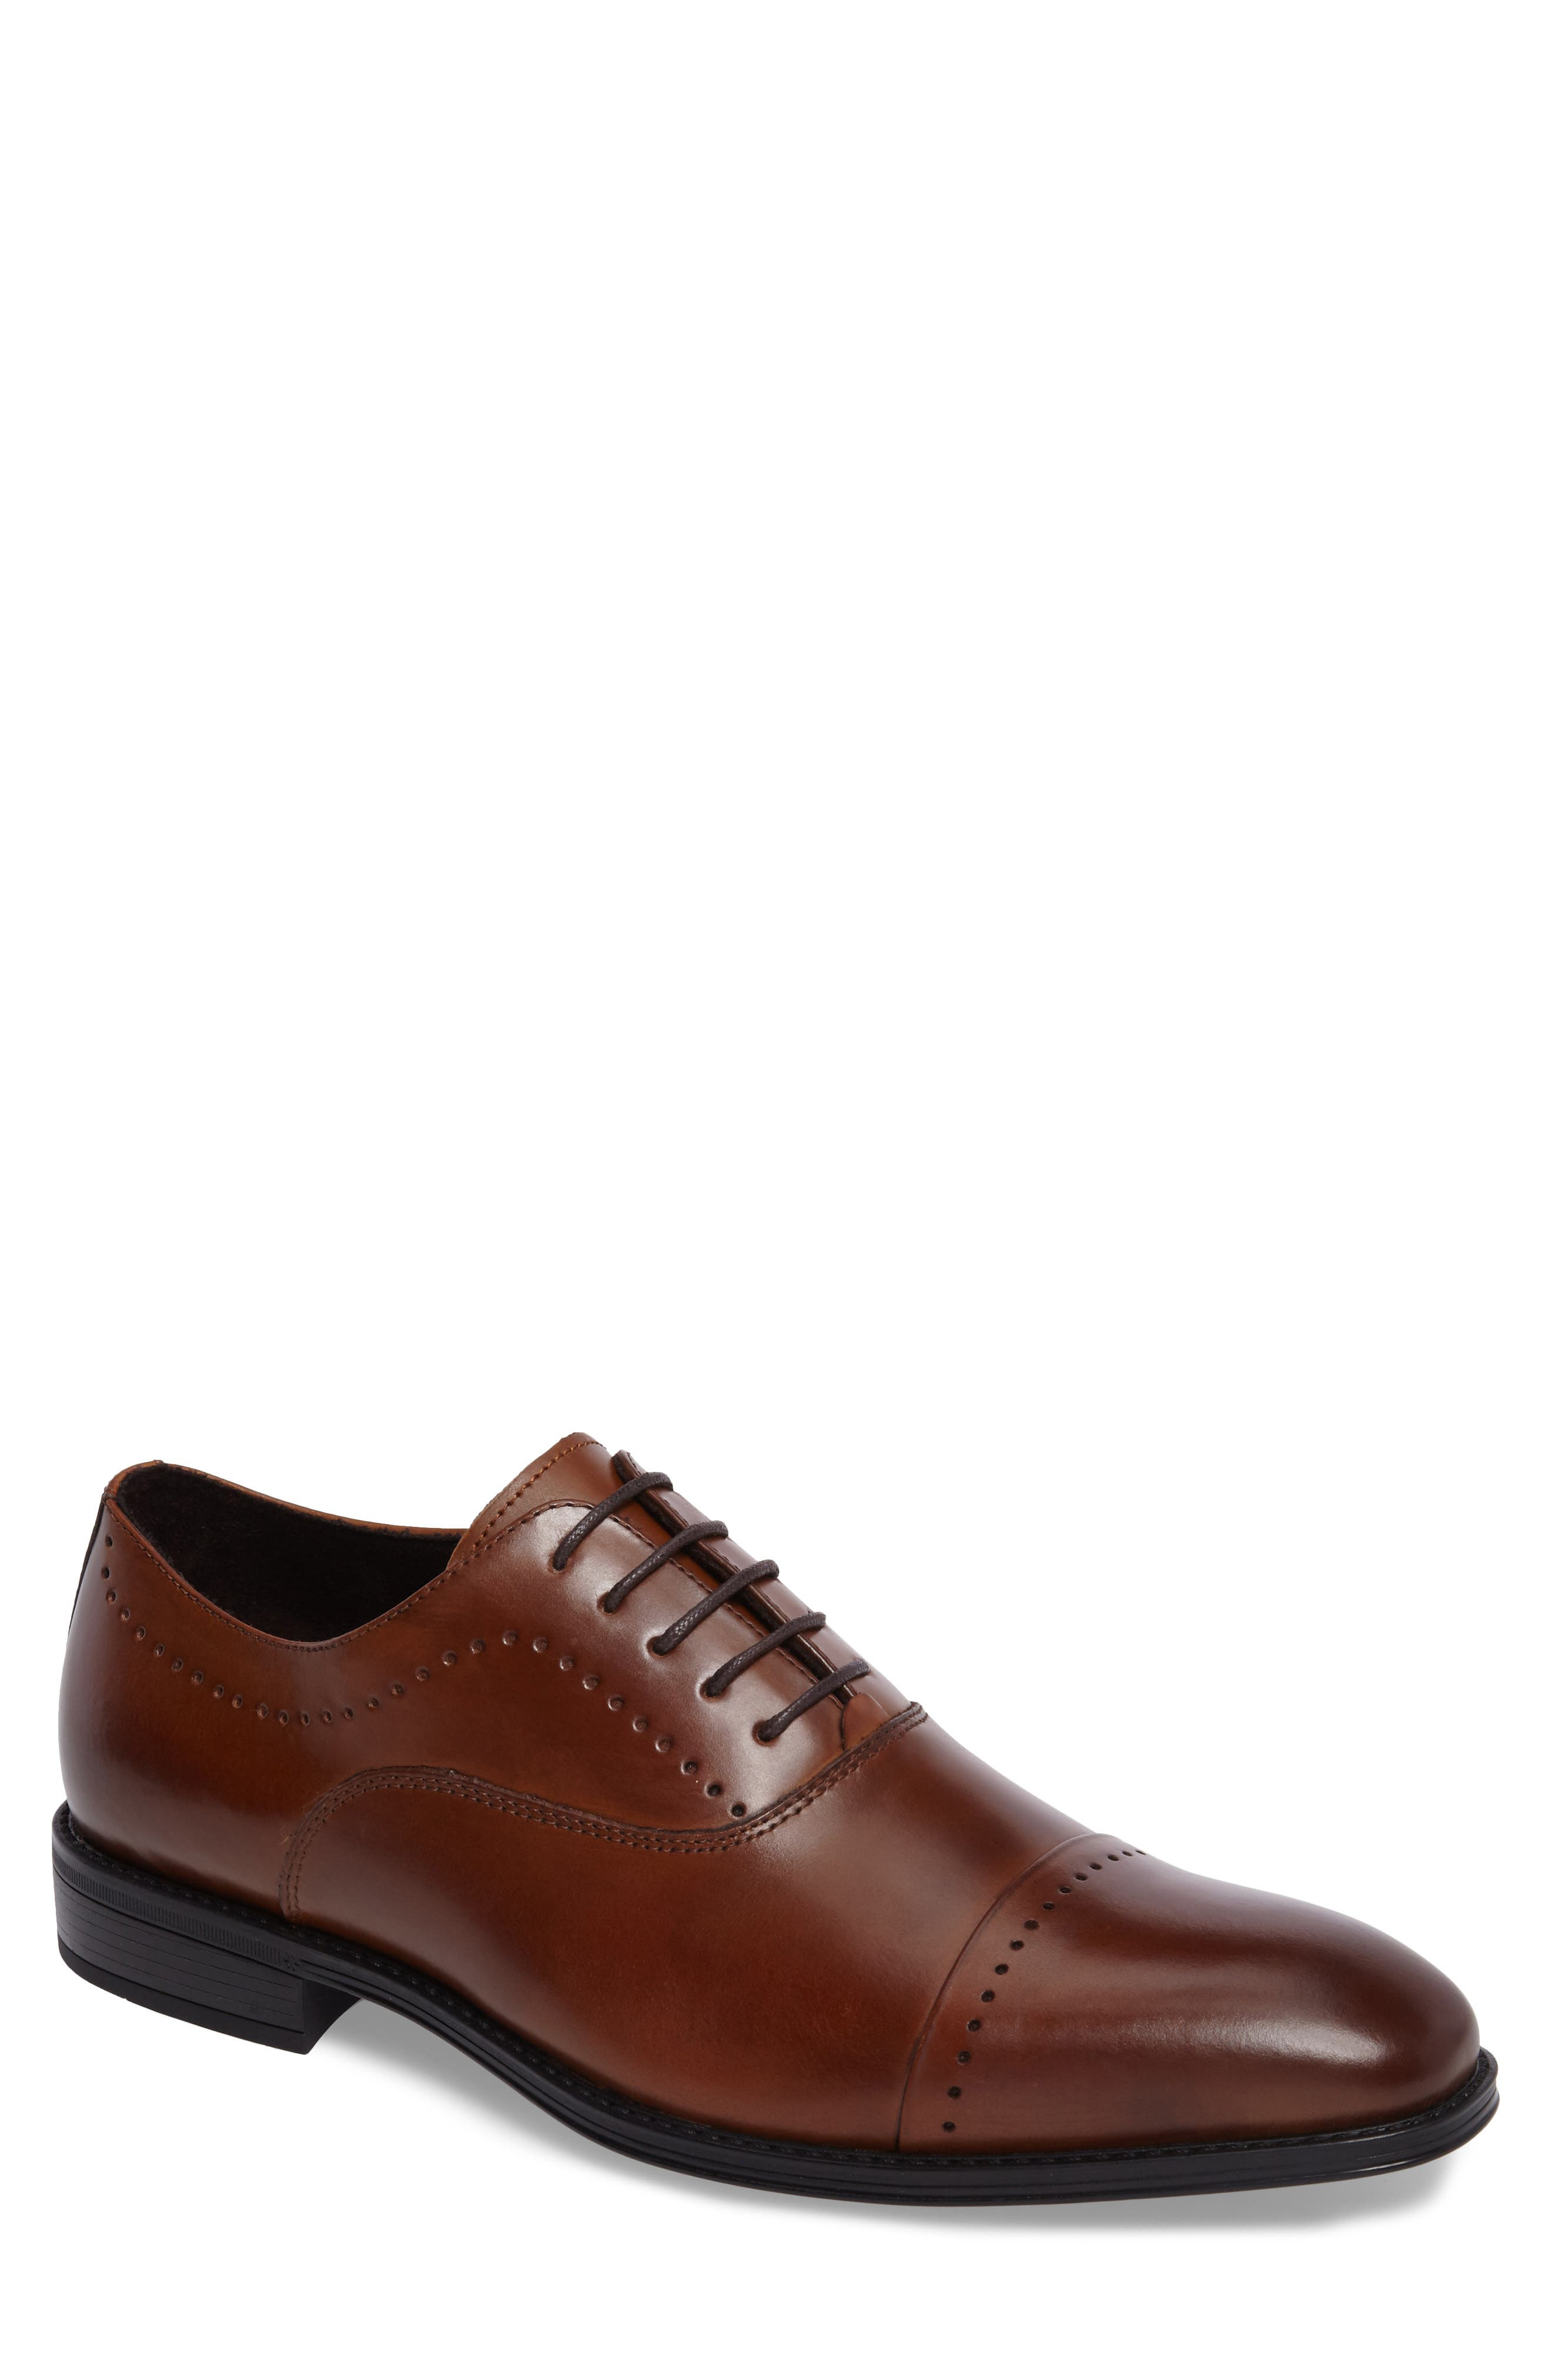 Kenneth Cole New York Cap Toe Oxford (Men)